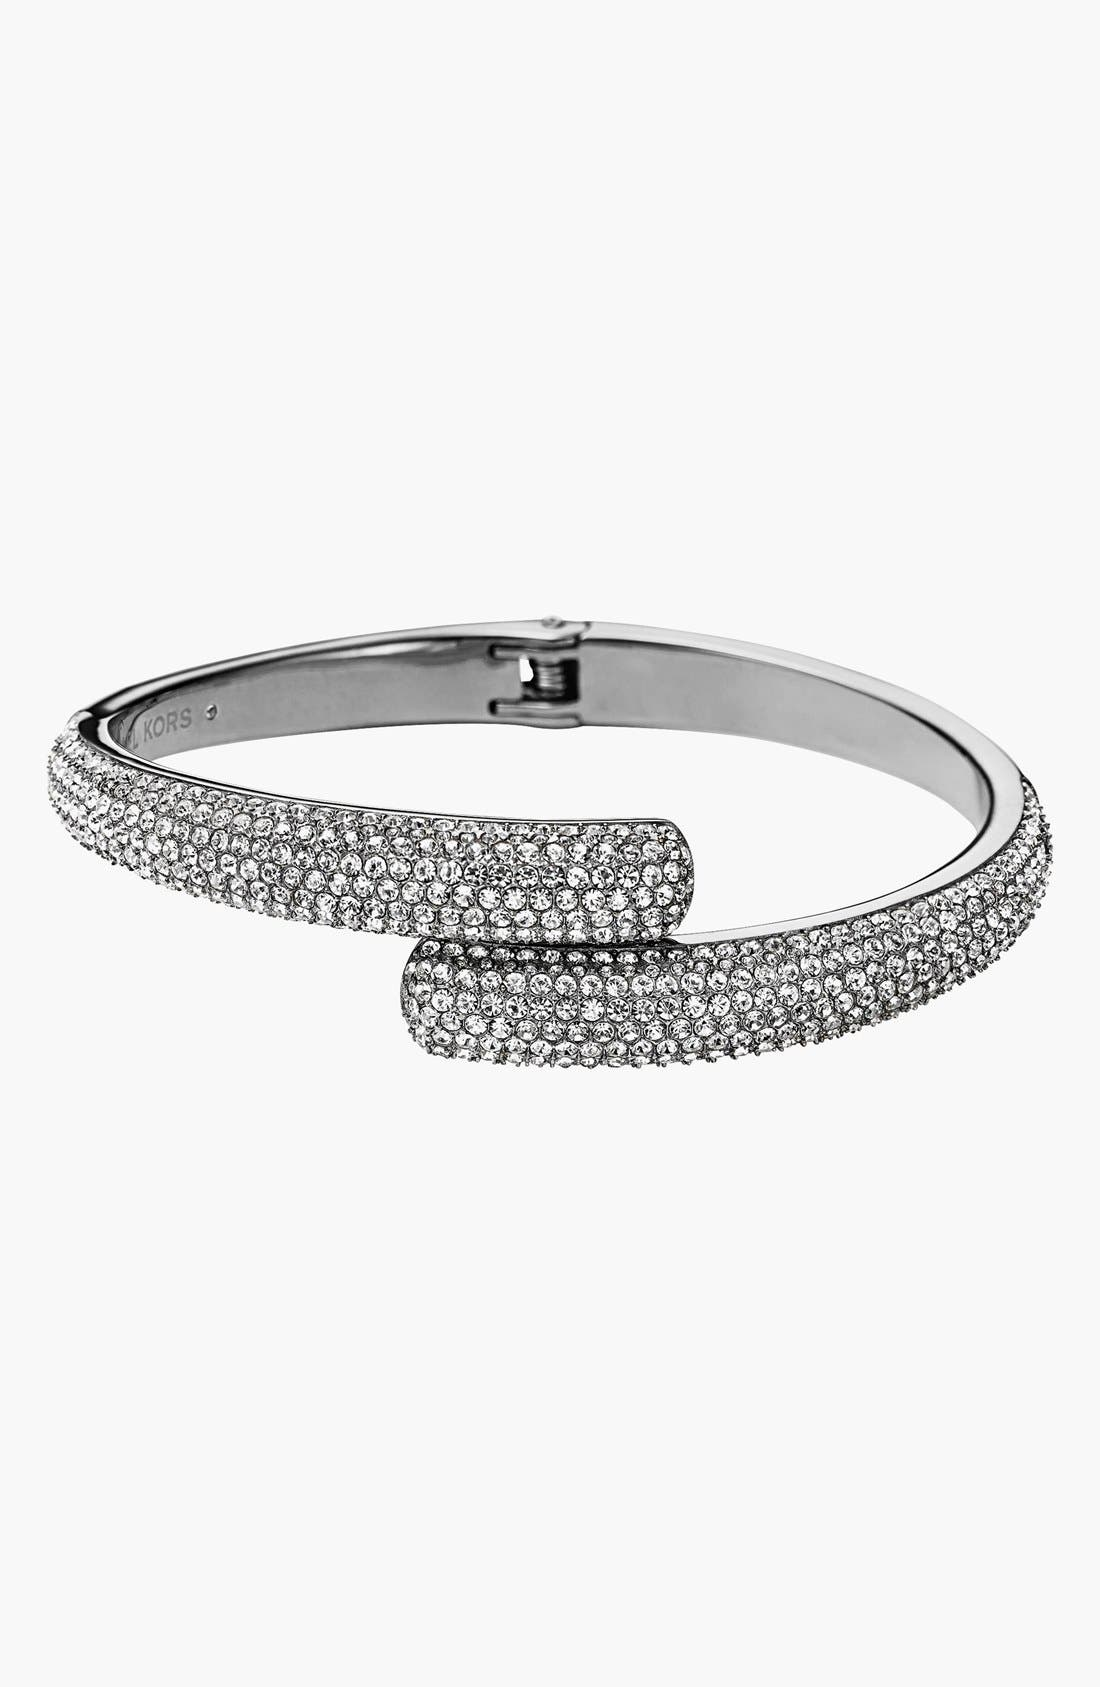 Alternate Image 1 Selected - Michael Kors Pavé Hinge Bangle